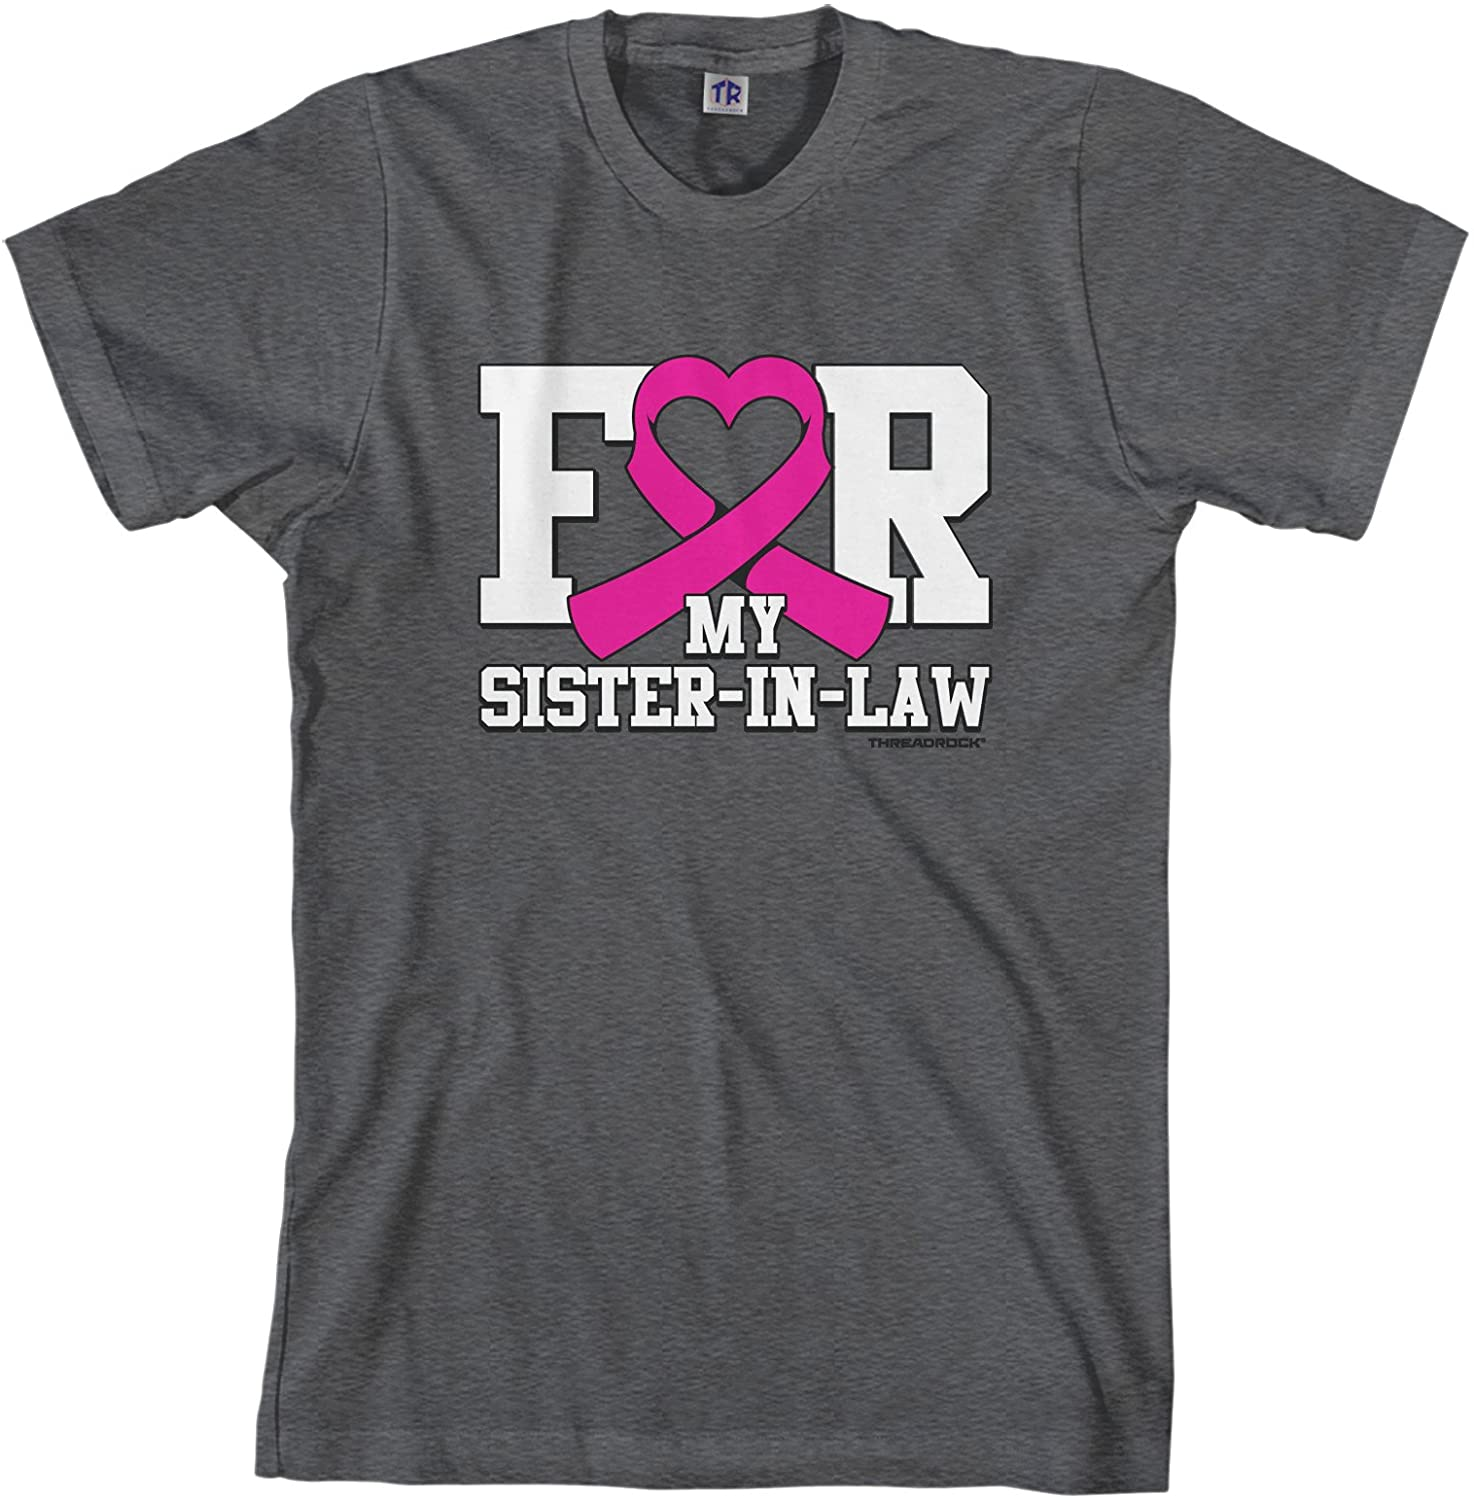 Threadrock Men's for My Sister-in-Law Breast Cancer Awareness T-Shirt